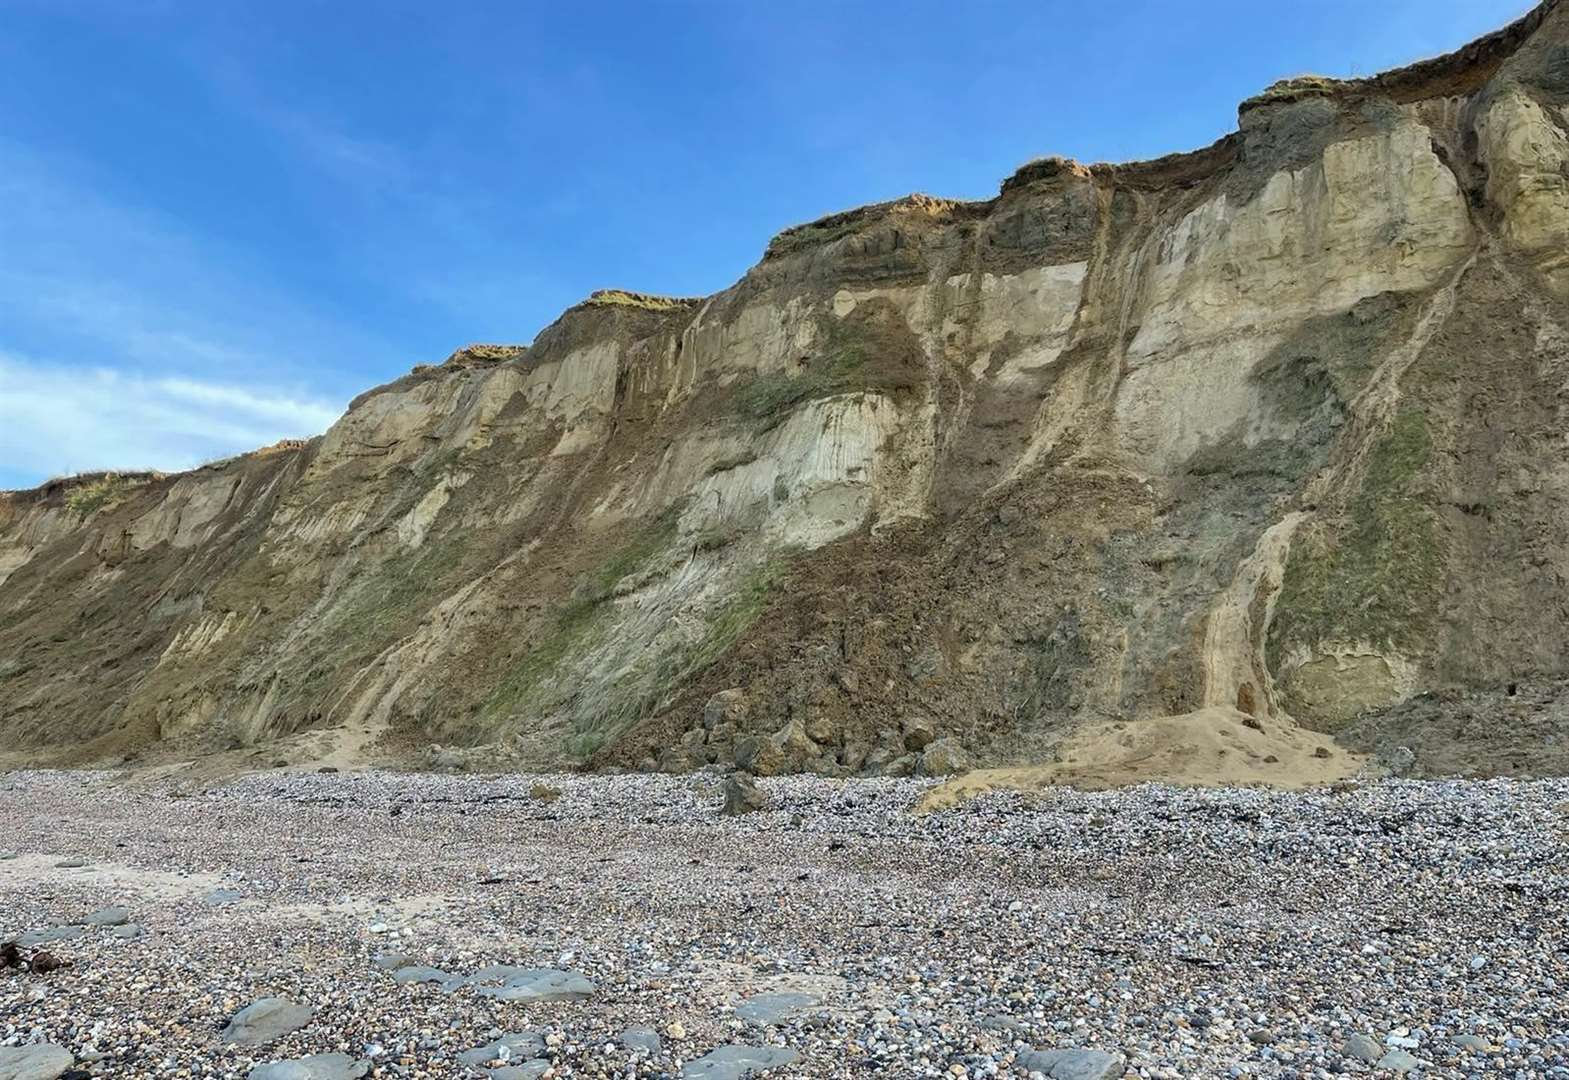 Walkers warned after cliff fall